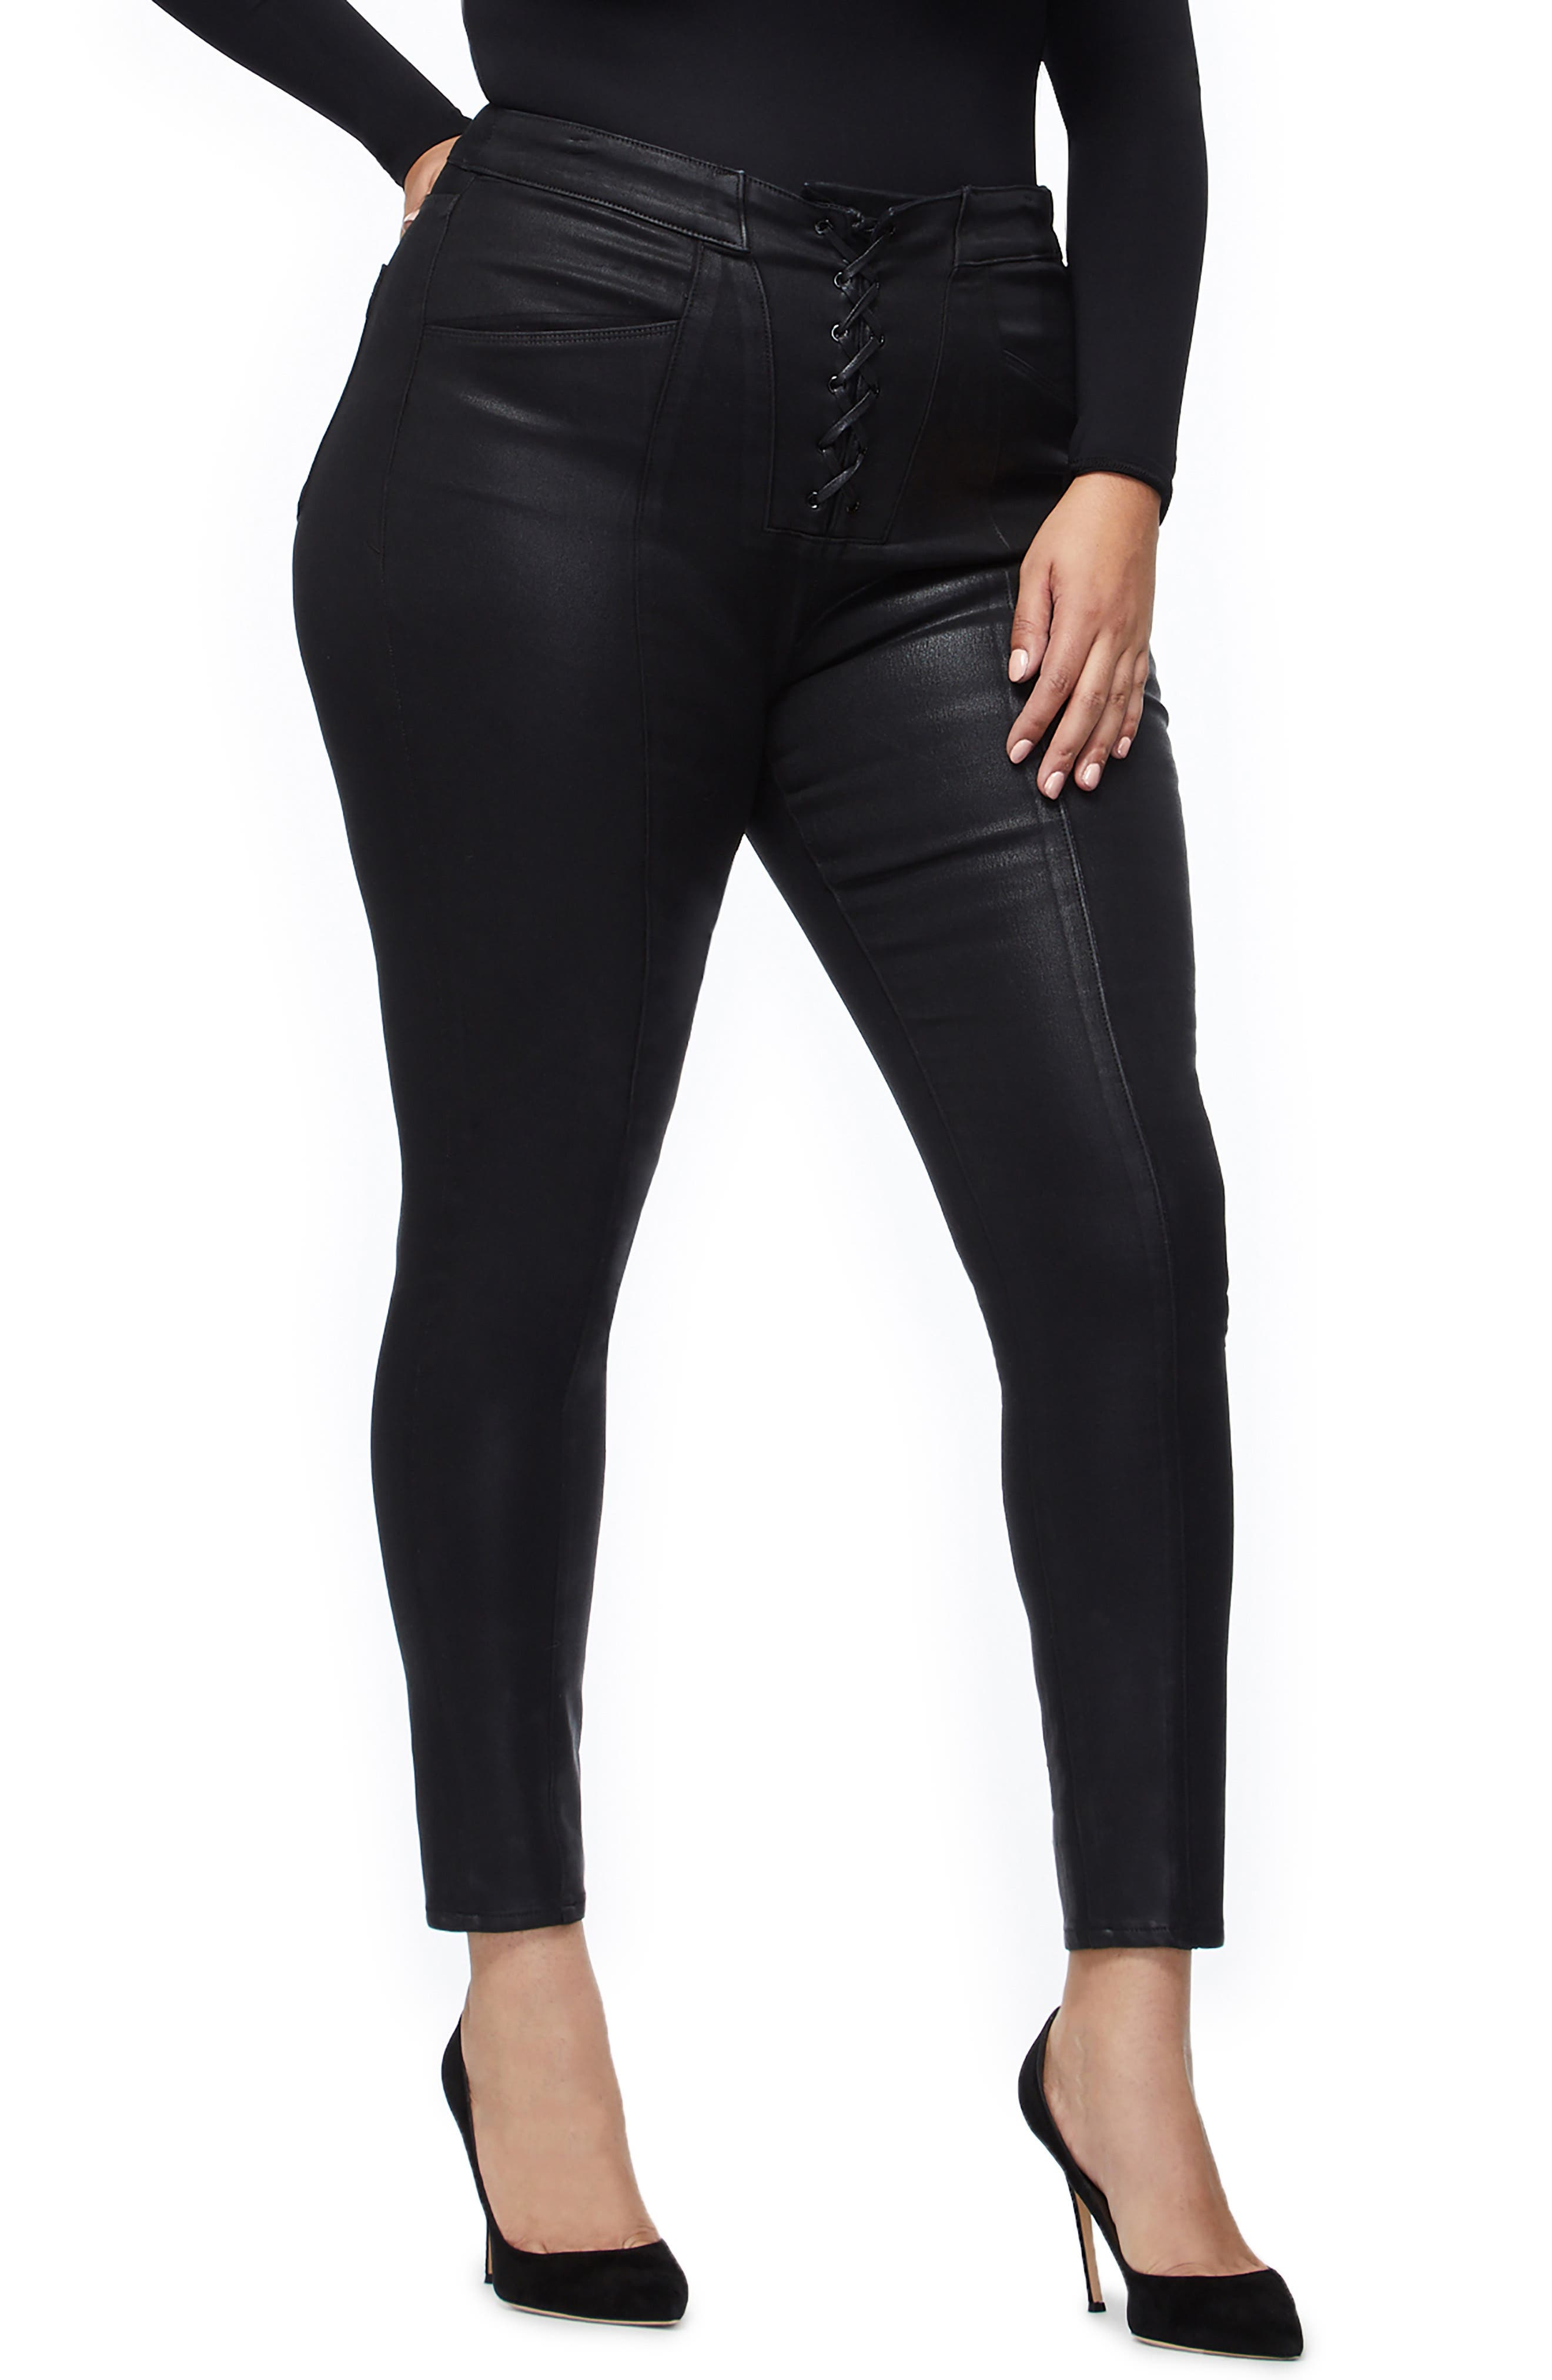 Coated Lace-Up High Waist Skinny Jeans,                             Alternate thumbnail 6, color,                             BLACK034